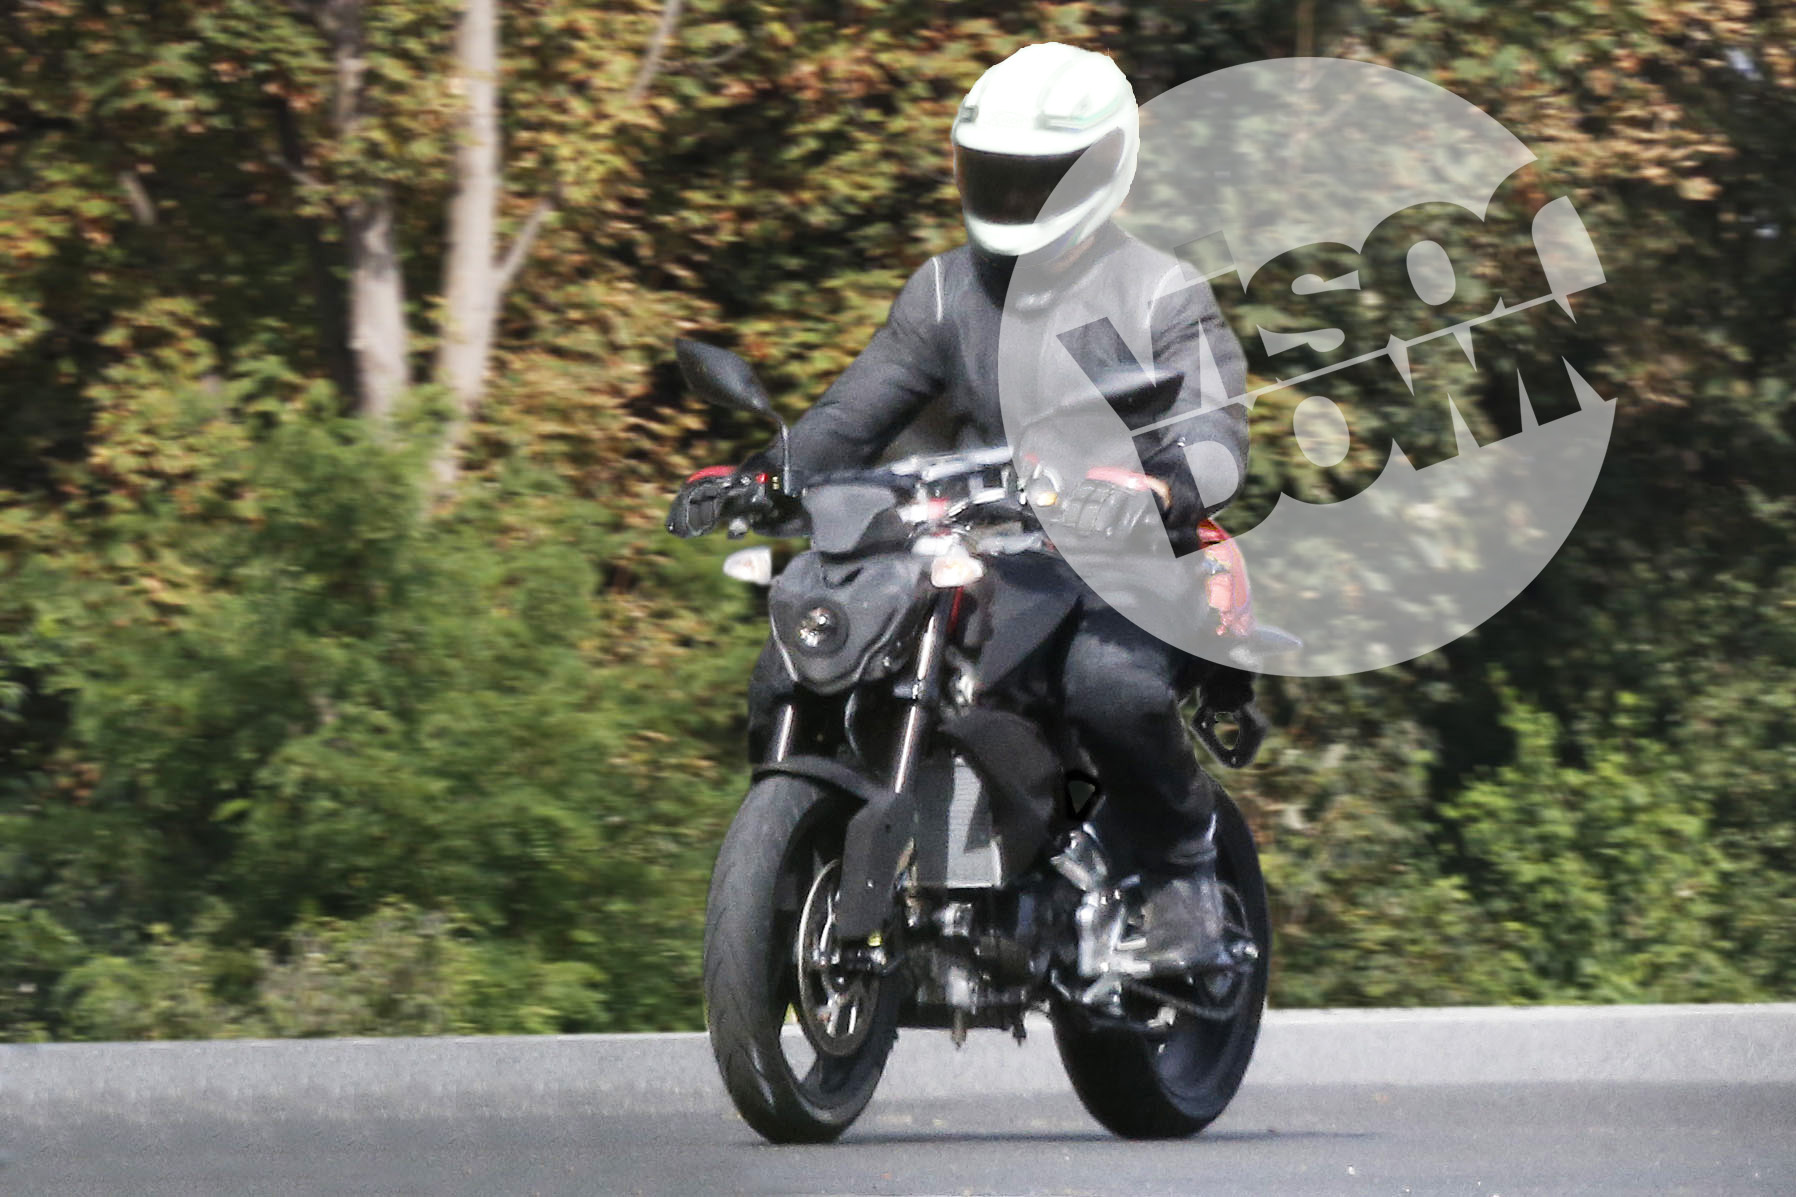 Spy shots: small-capacity naked BMW spied testing